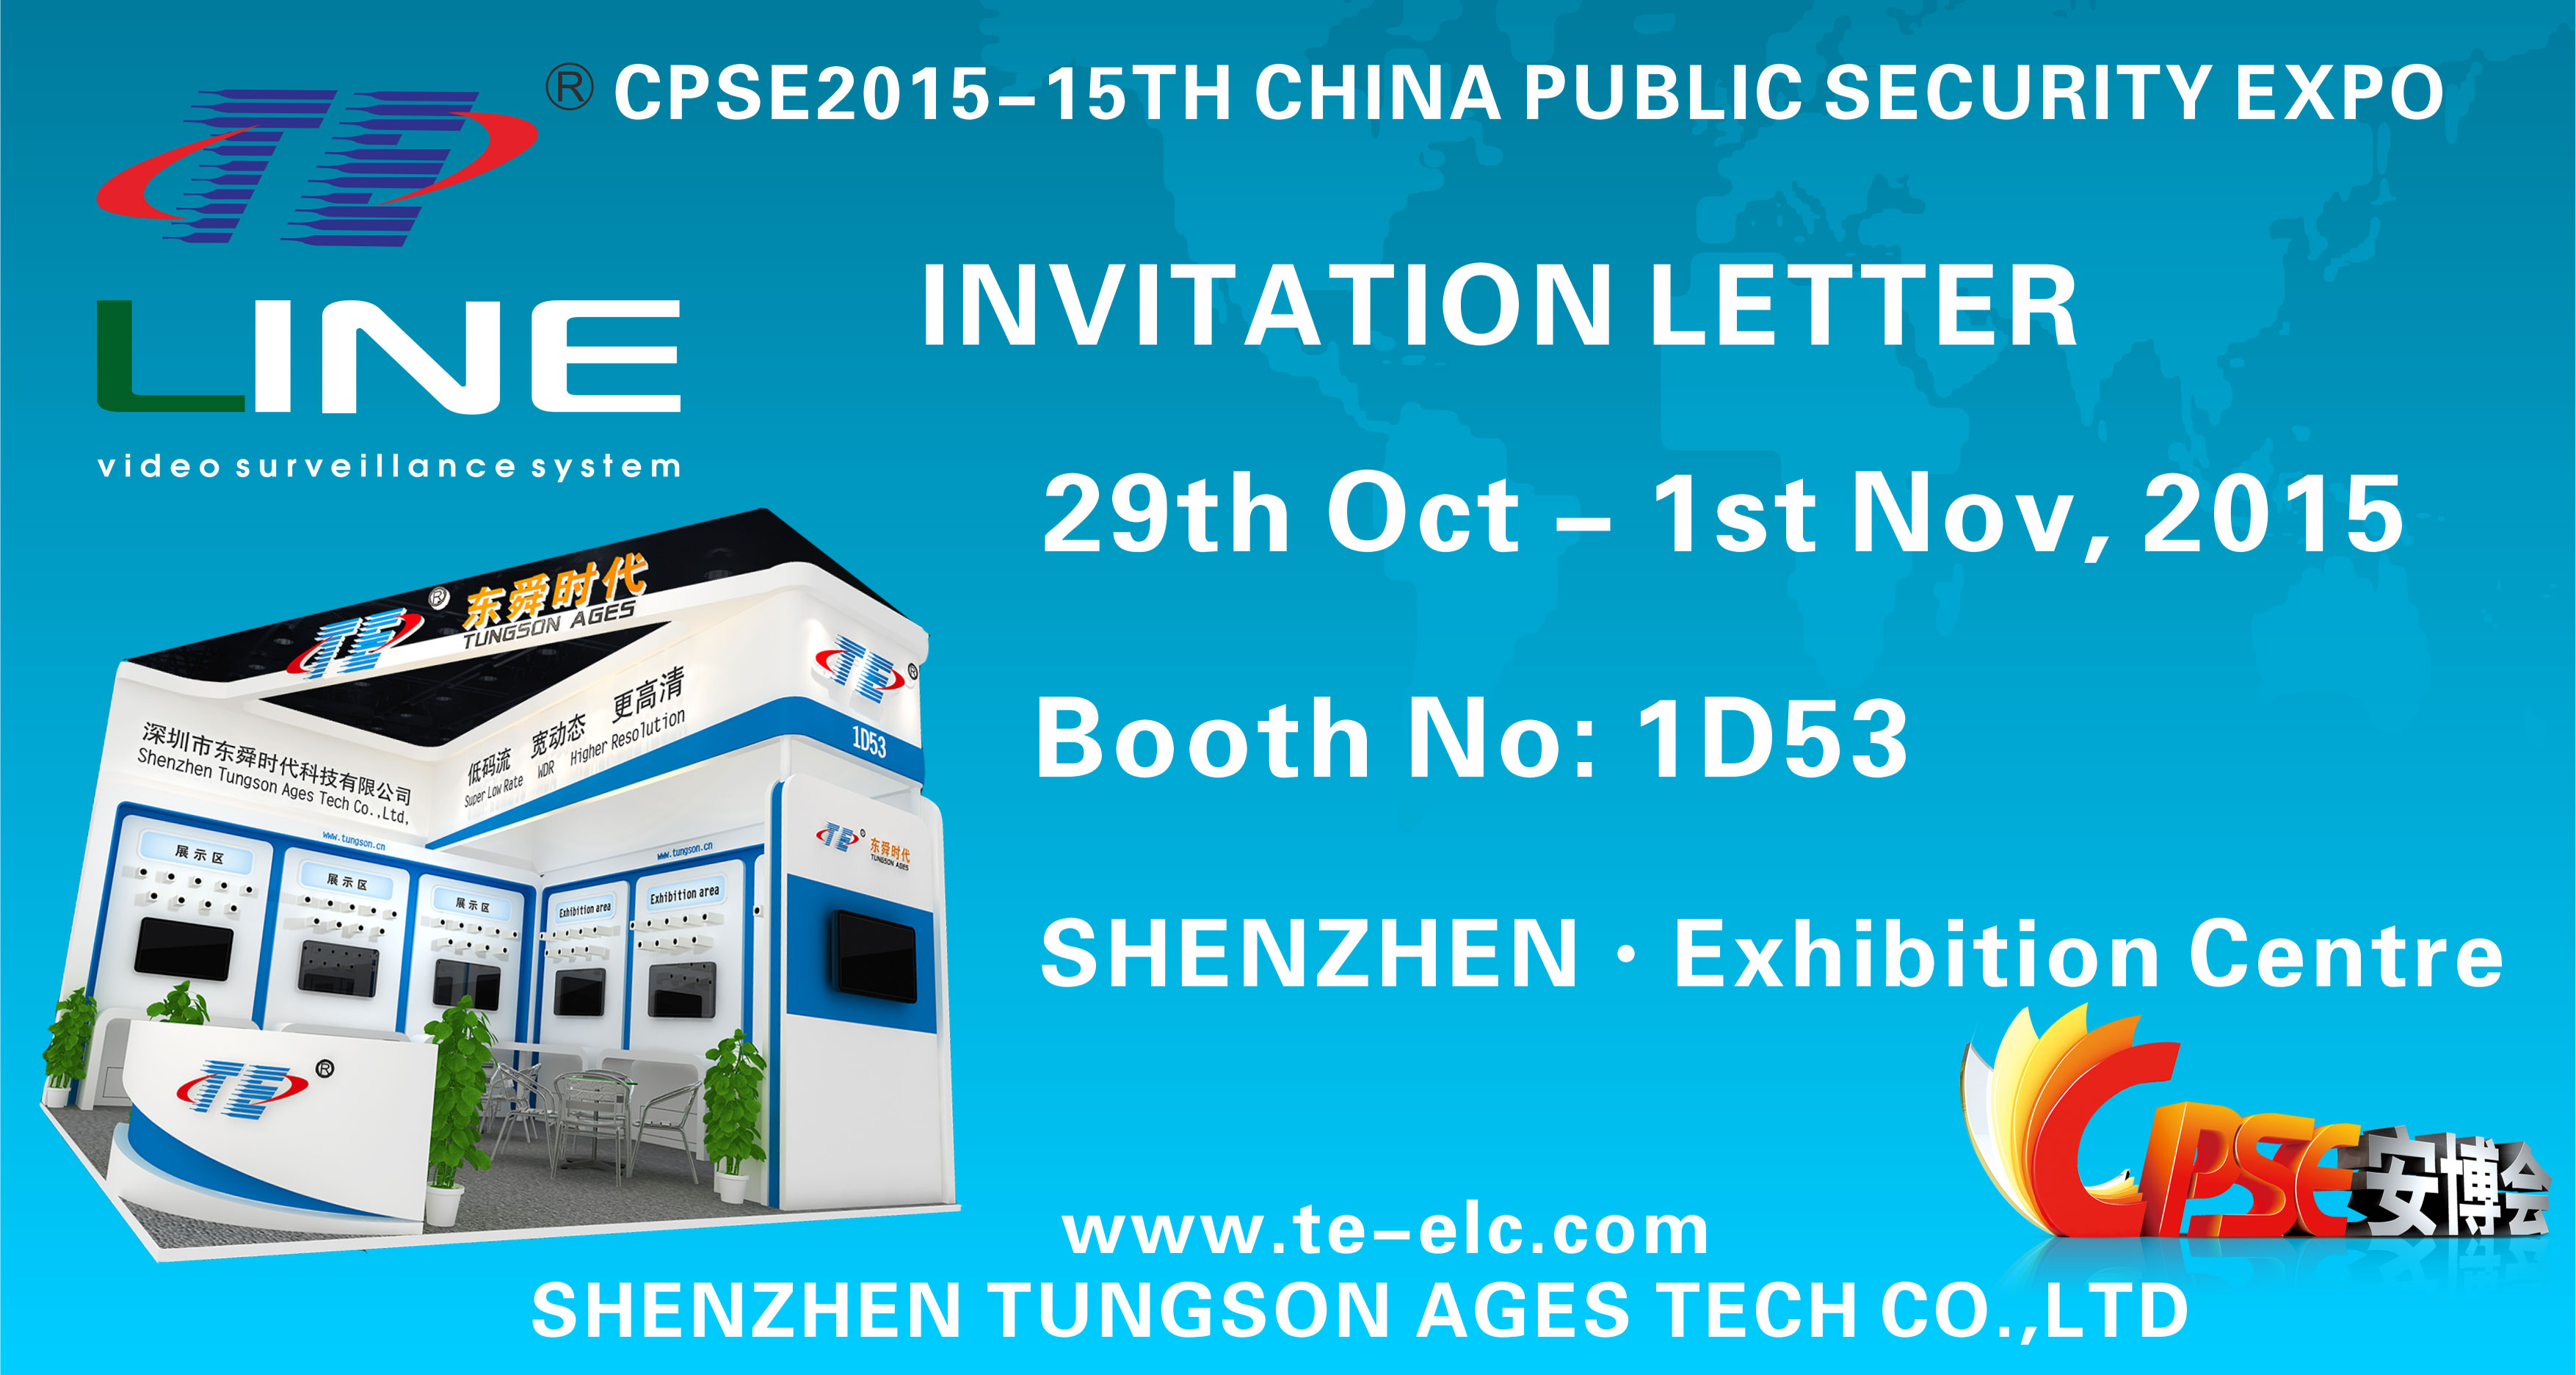 The 15th China Public Security Expo